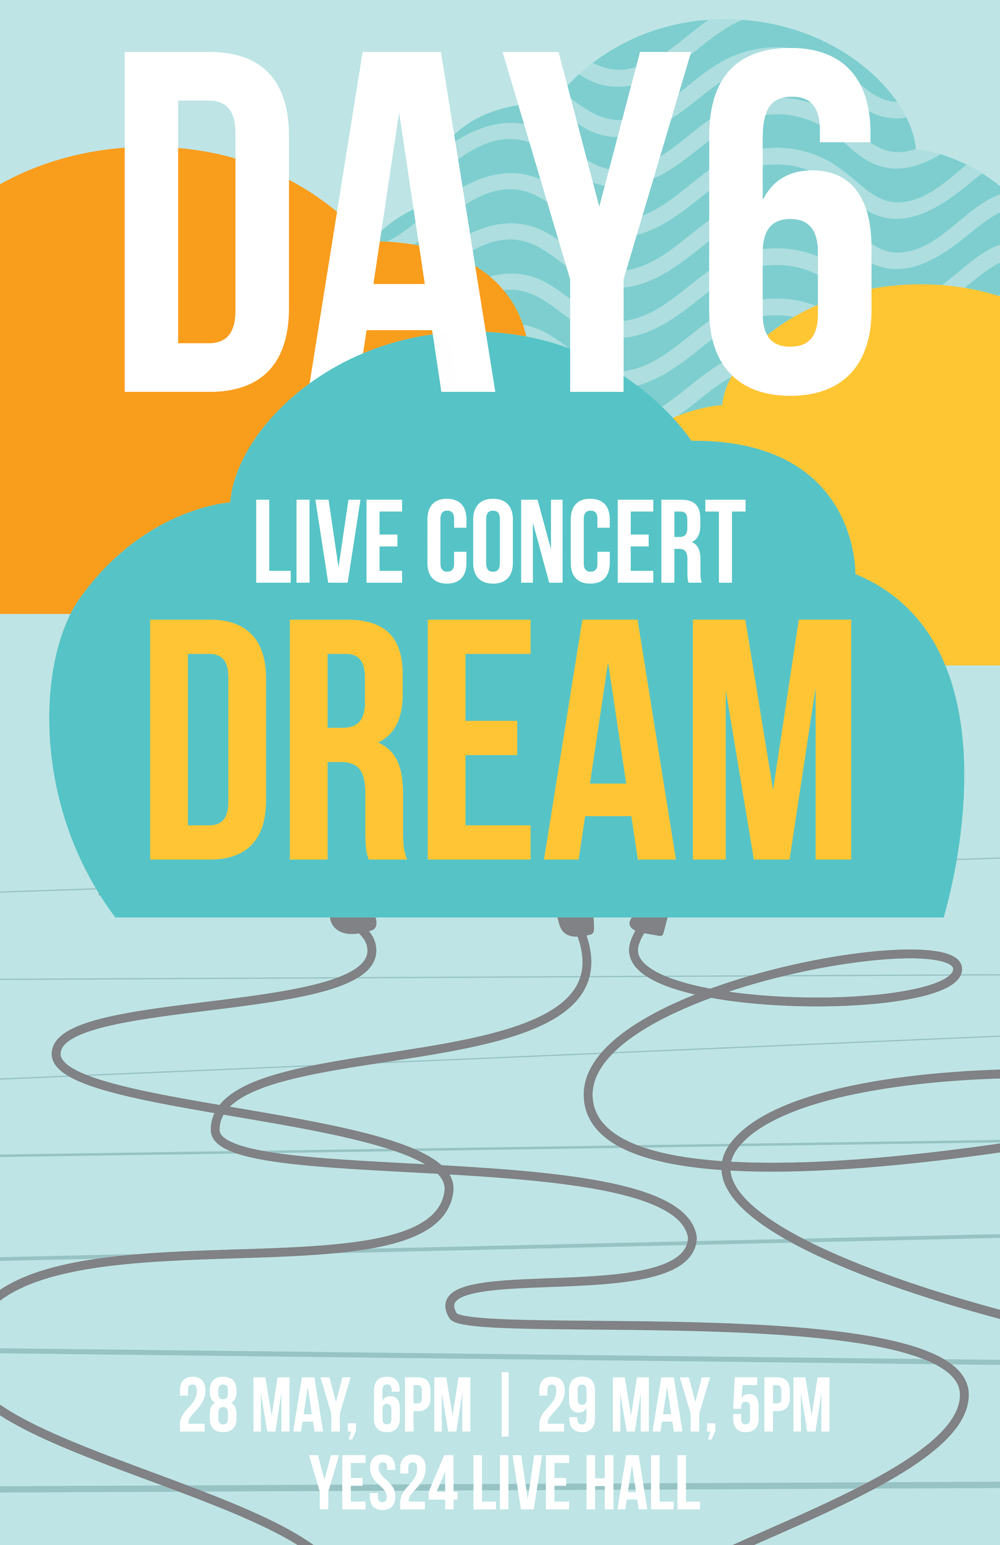 Day6 Gig Poster - image 3 - student project